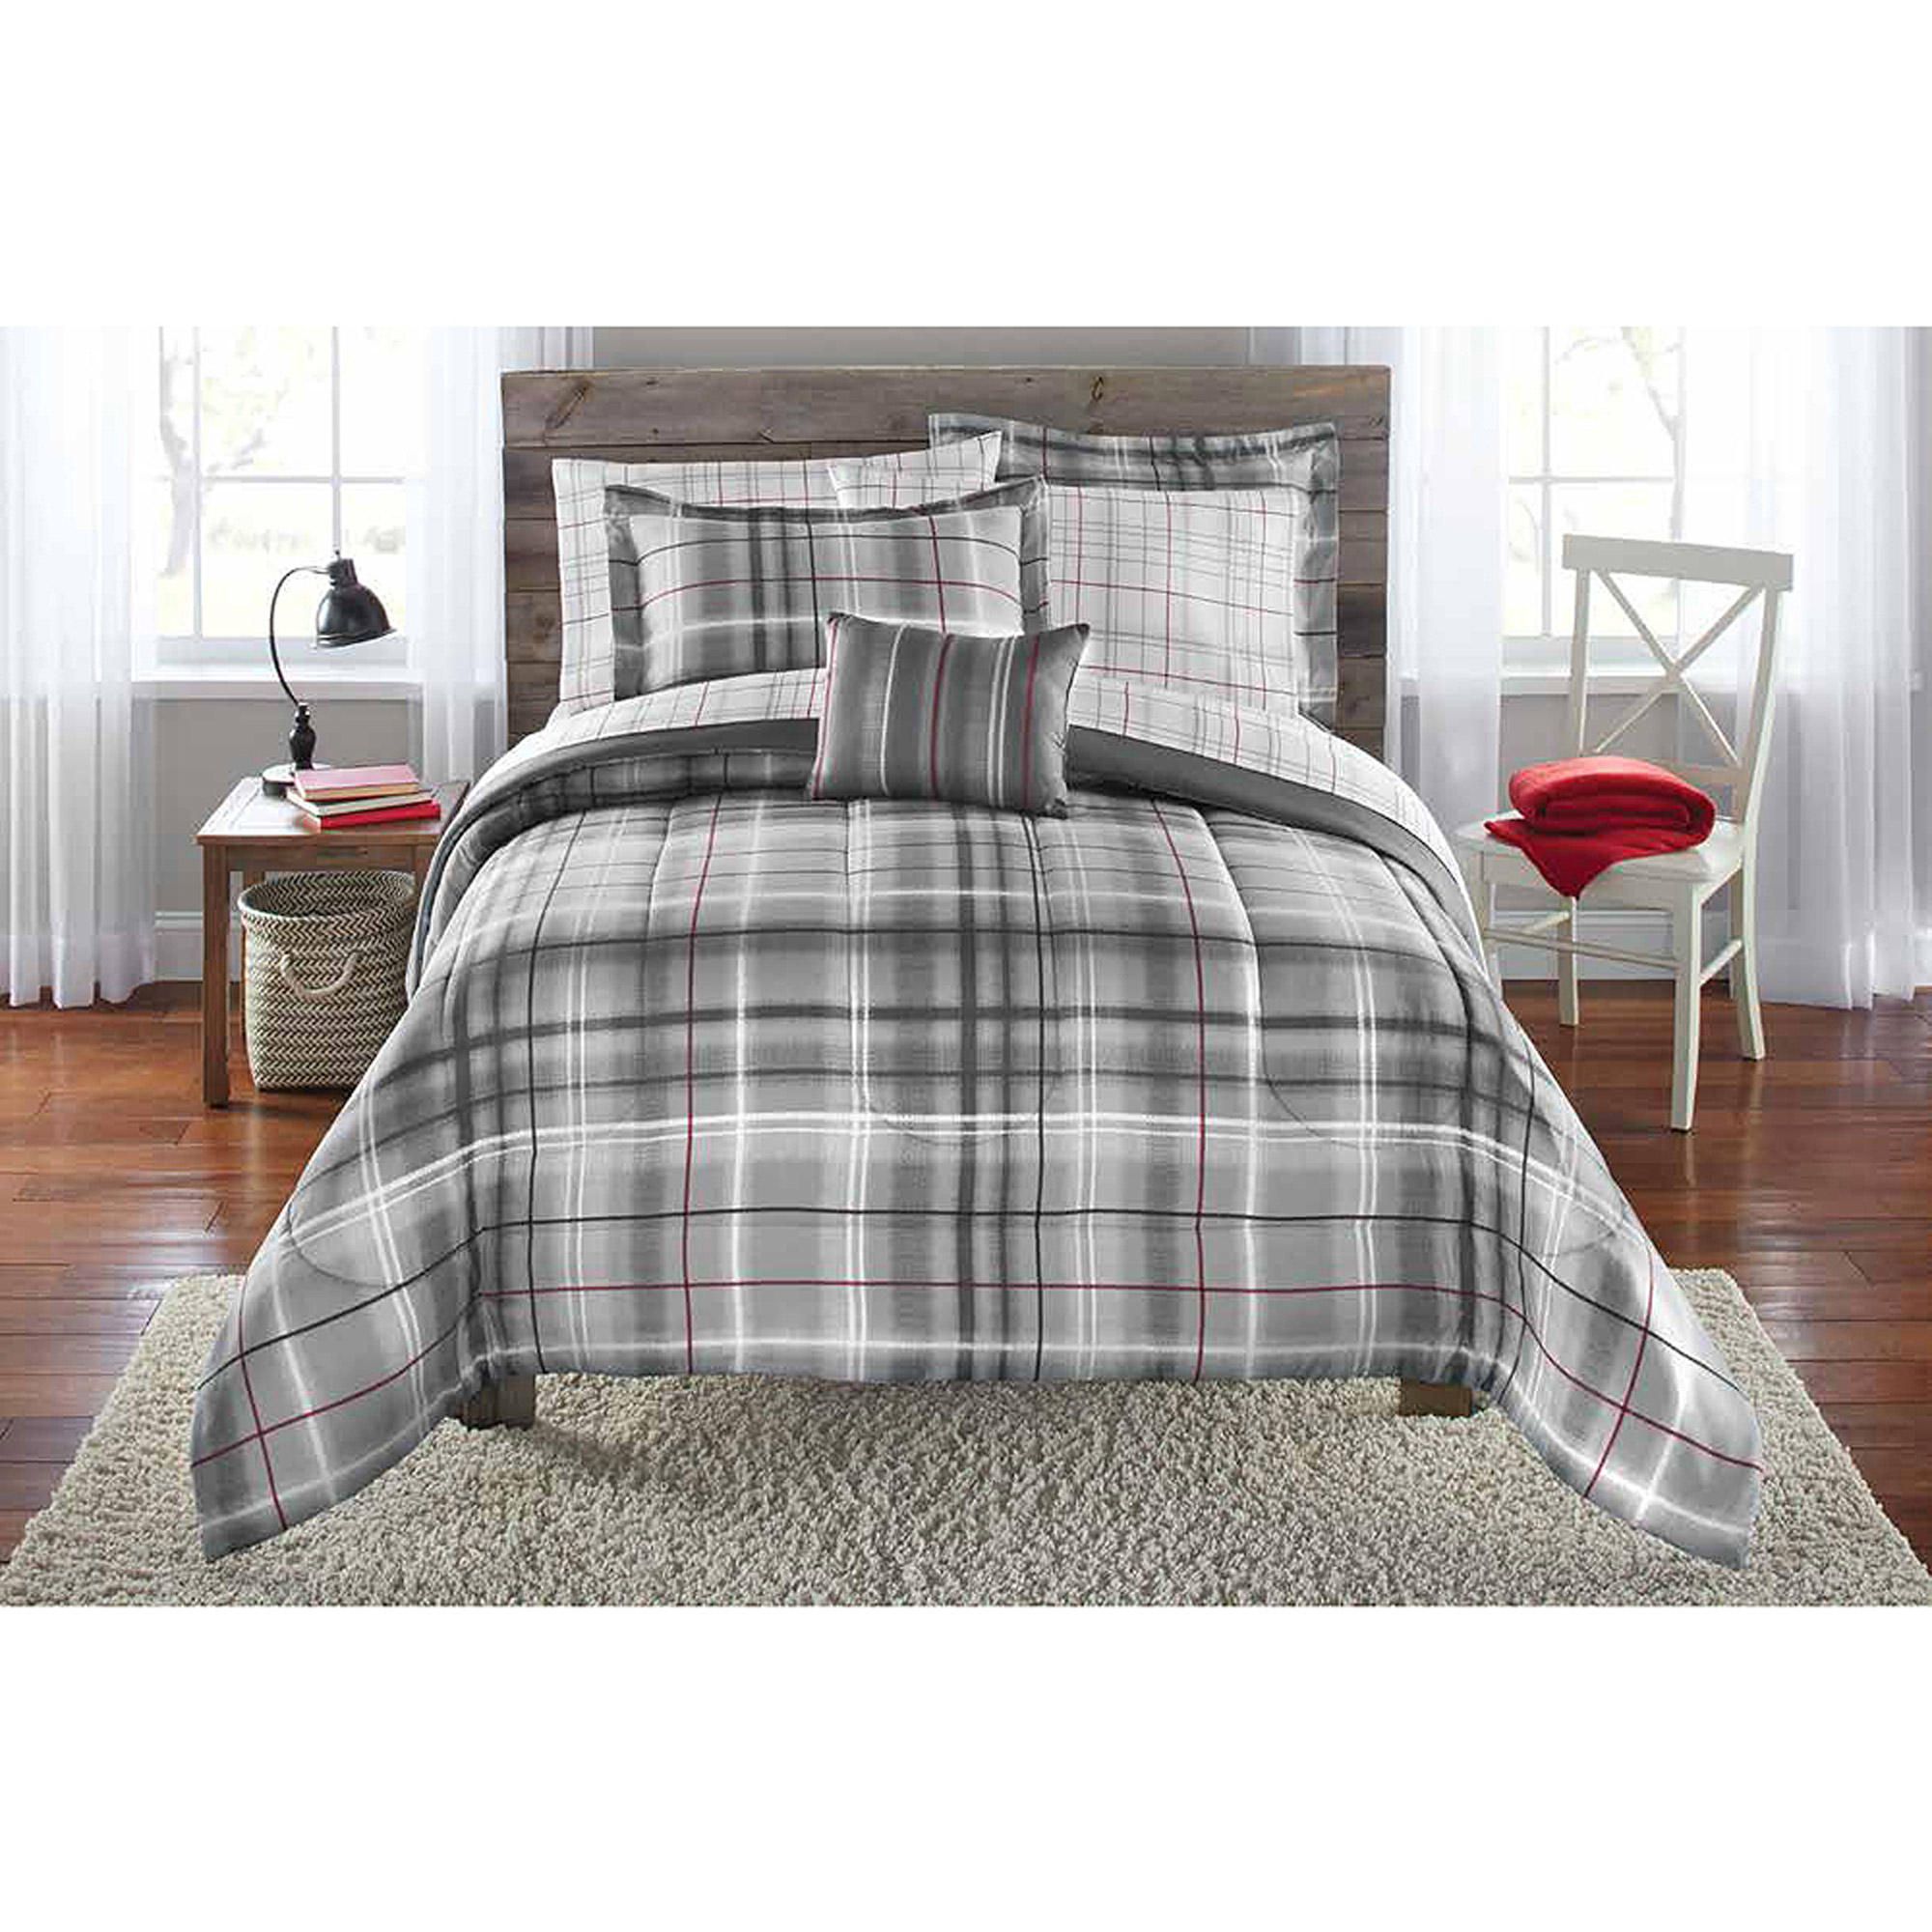 Elegant plaid comforter with rugs and wooden floor plus headboard  sidetable also pillows Bedroom Classy Plaid Comforter Furniture For Bedding Sets Ideas